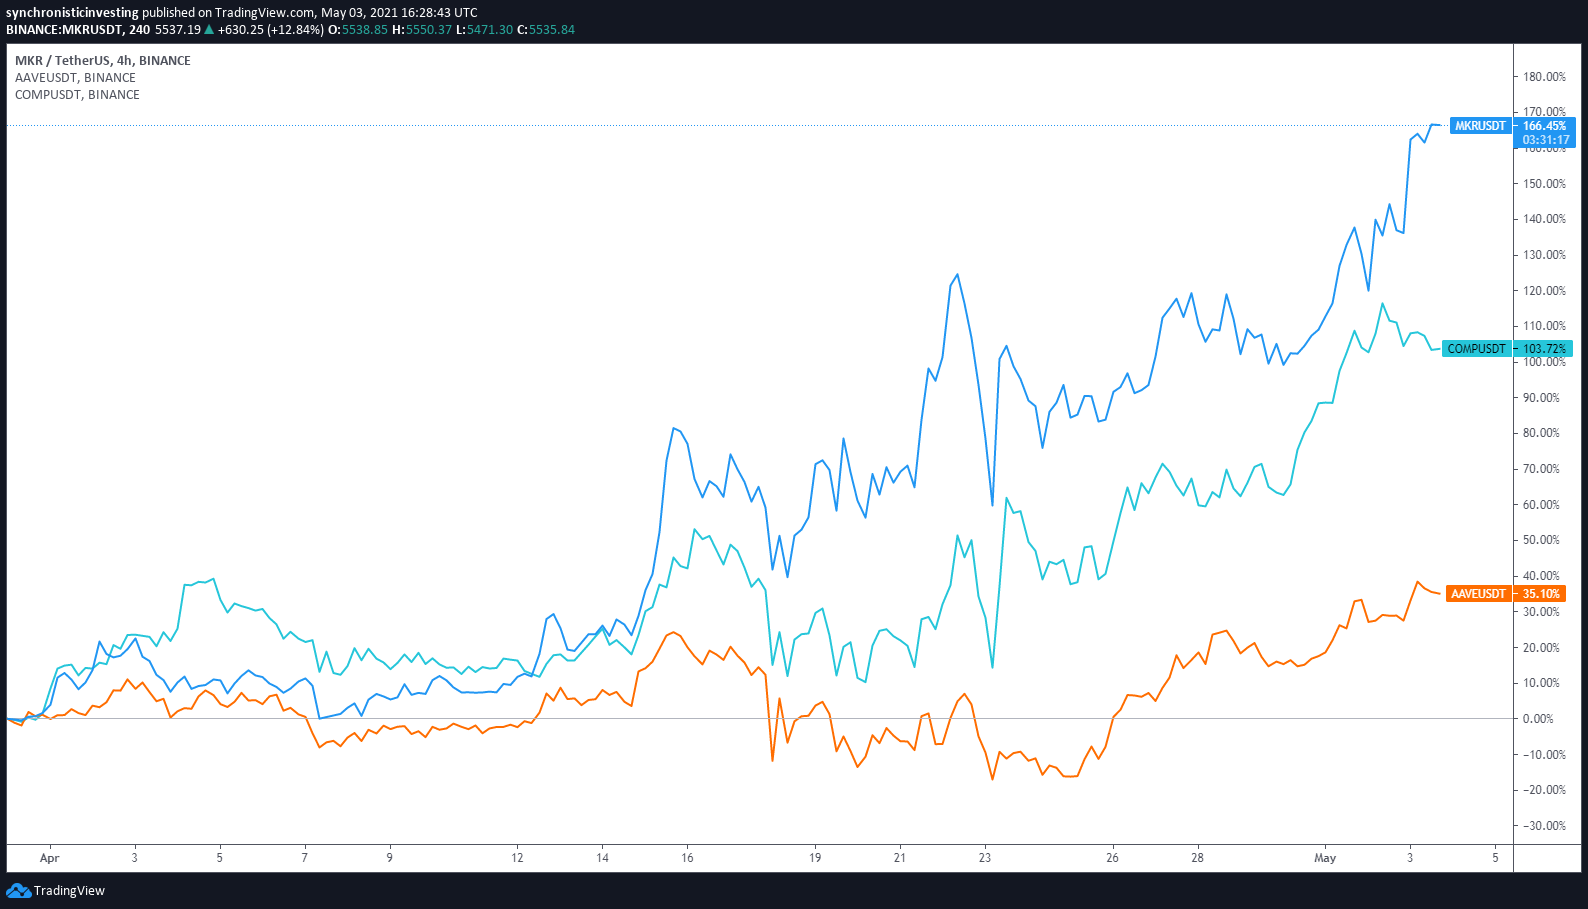 DeFi resurgence lifts Maker, Aave and Compound worth to new highs